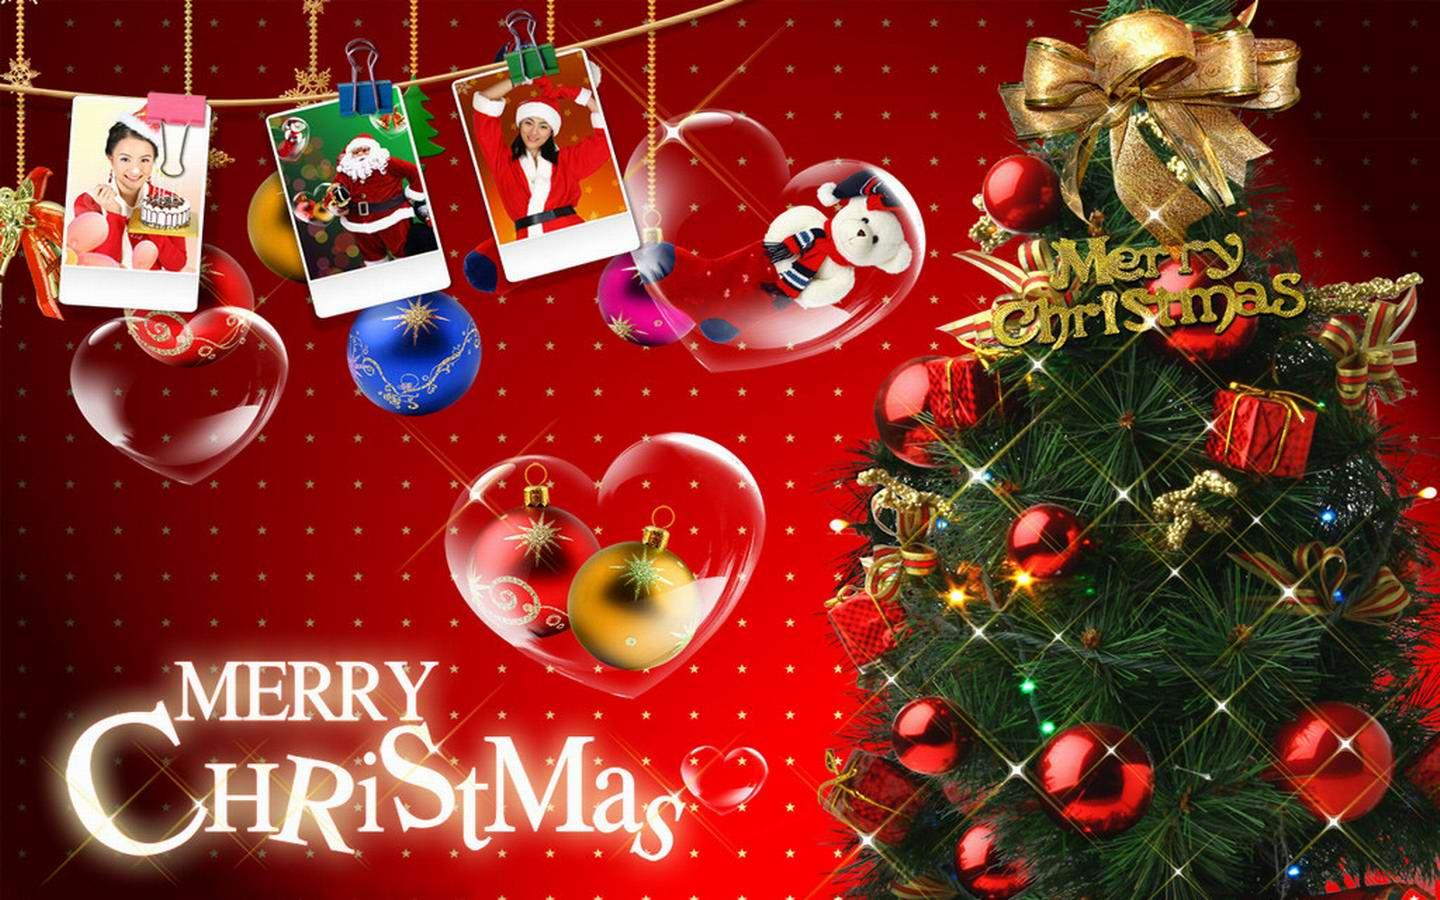 Christmas theme wallpaper - Android Apps on Google Play